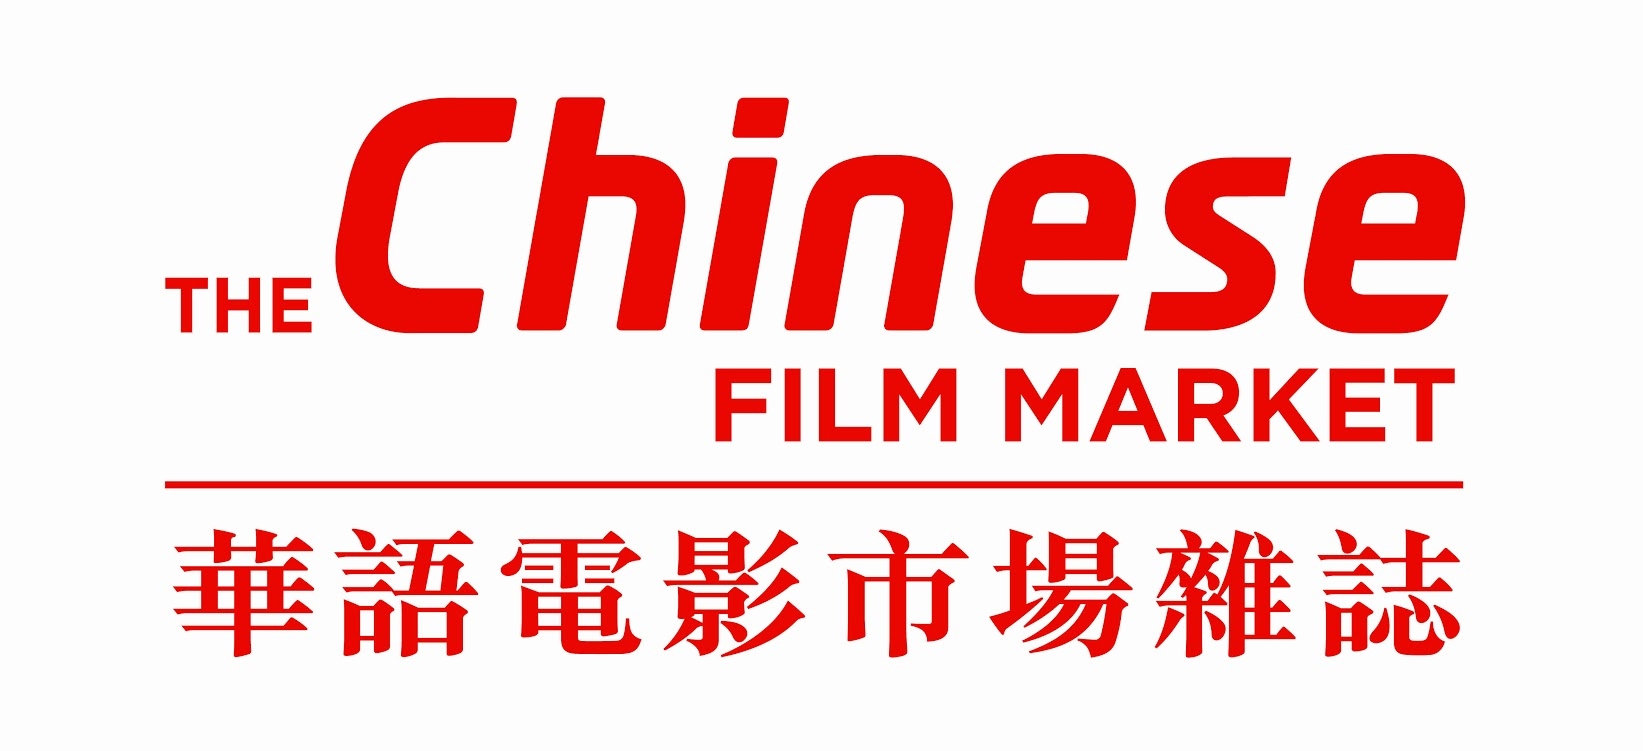 Chinese Film Market